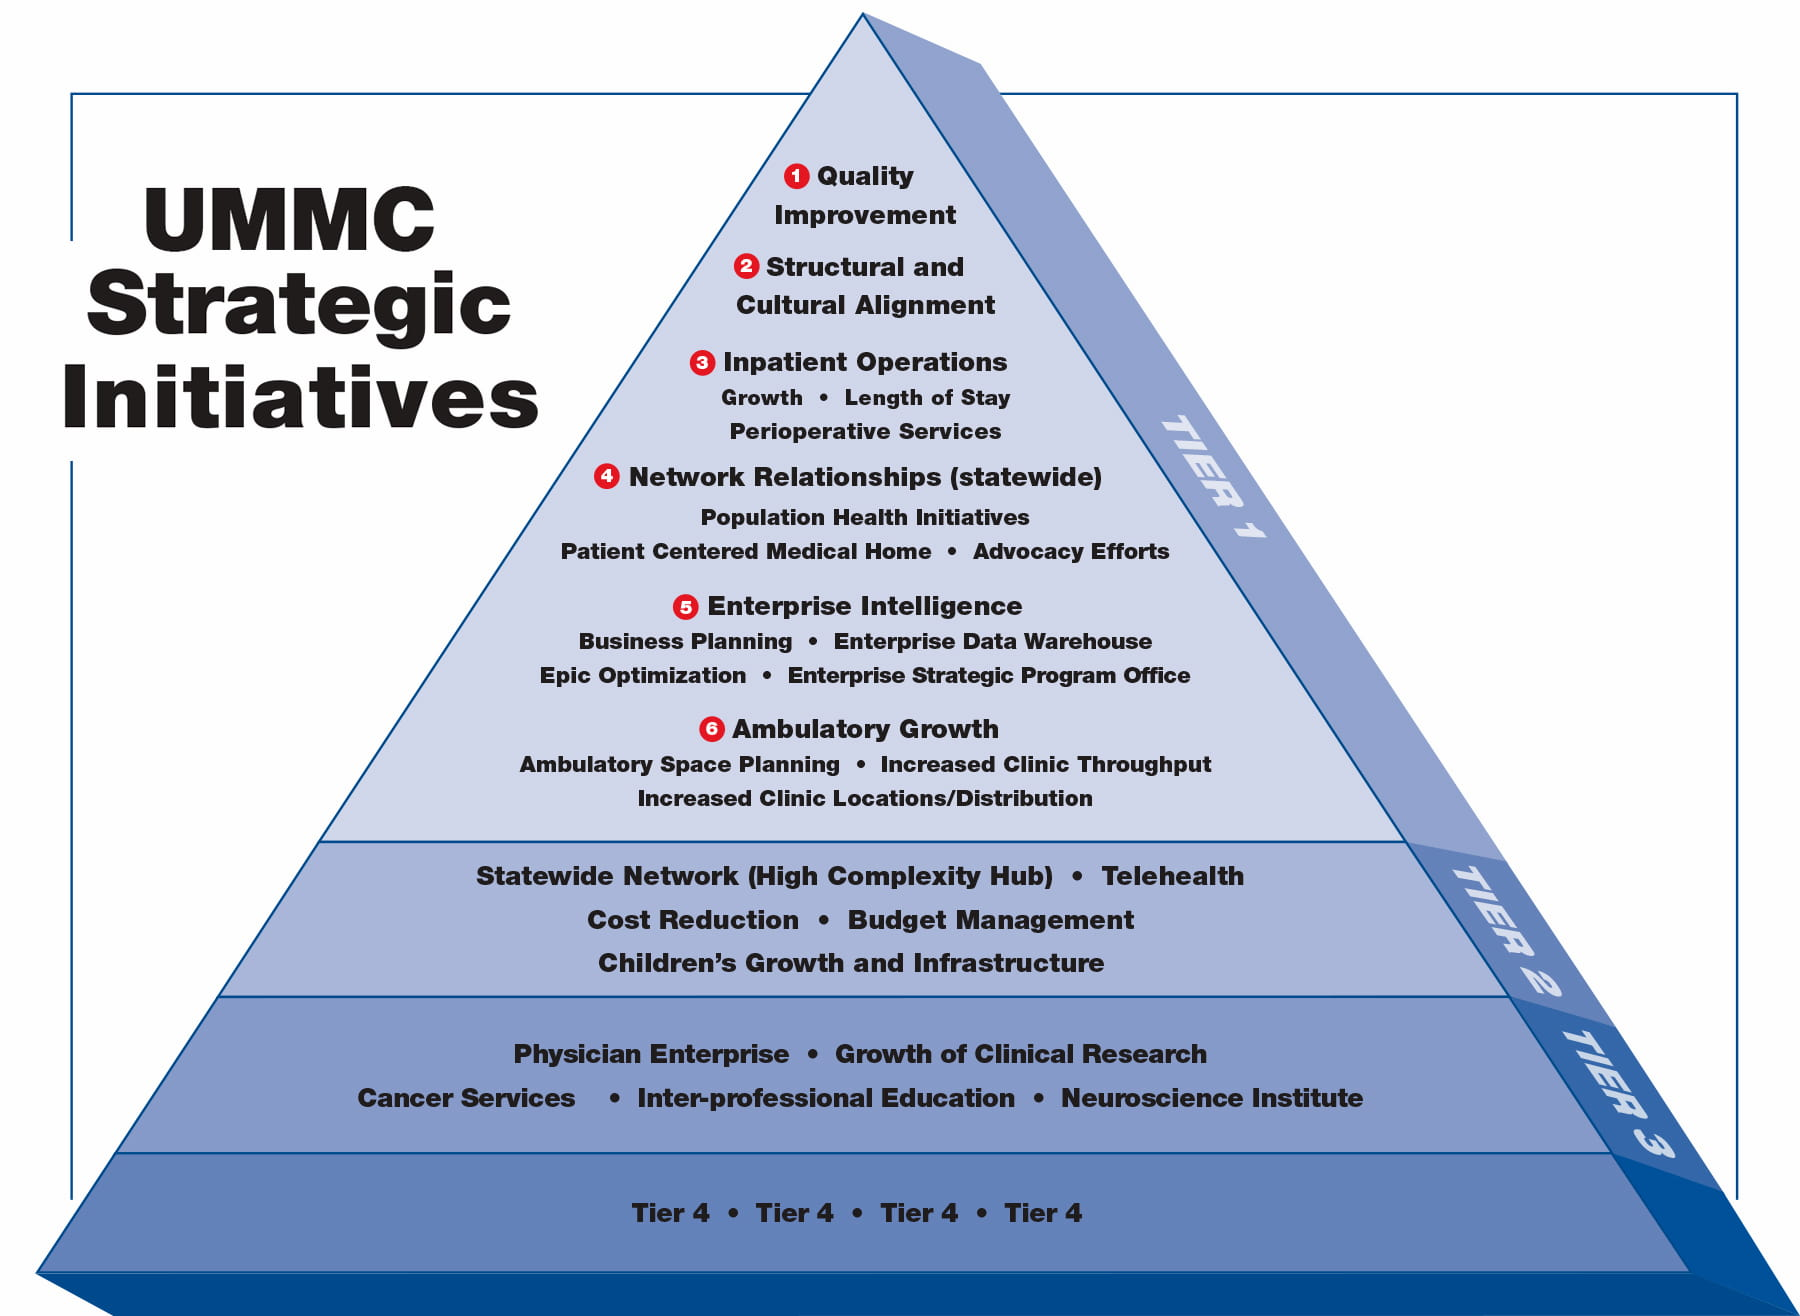 Strategic Initiatives chart,jpg